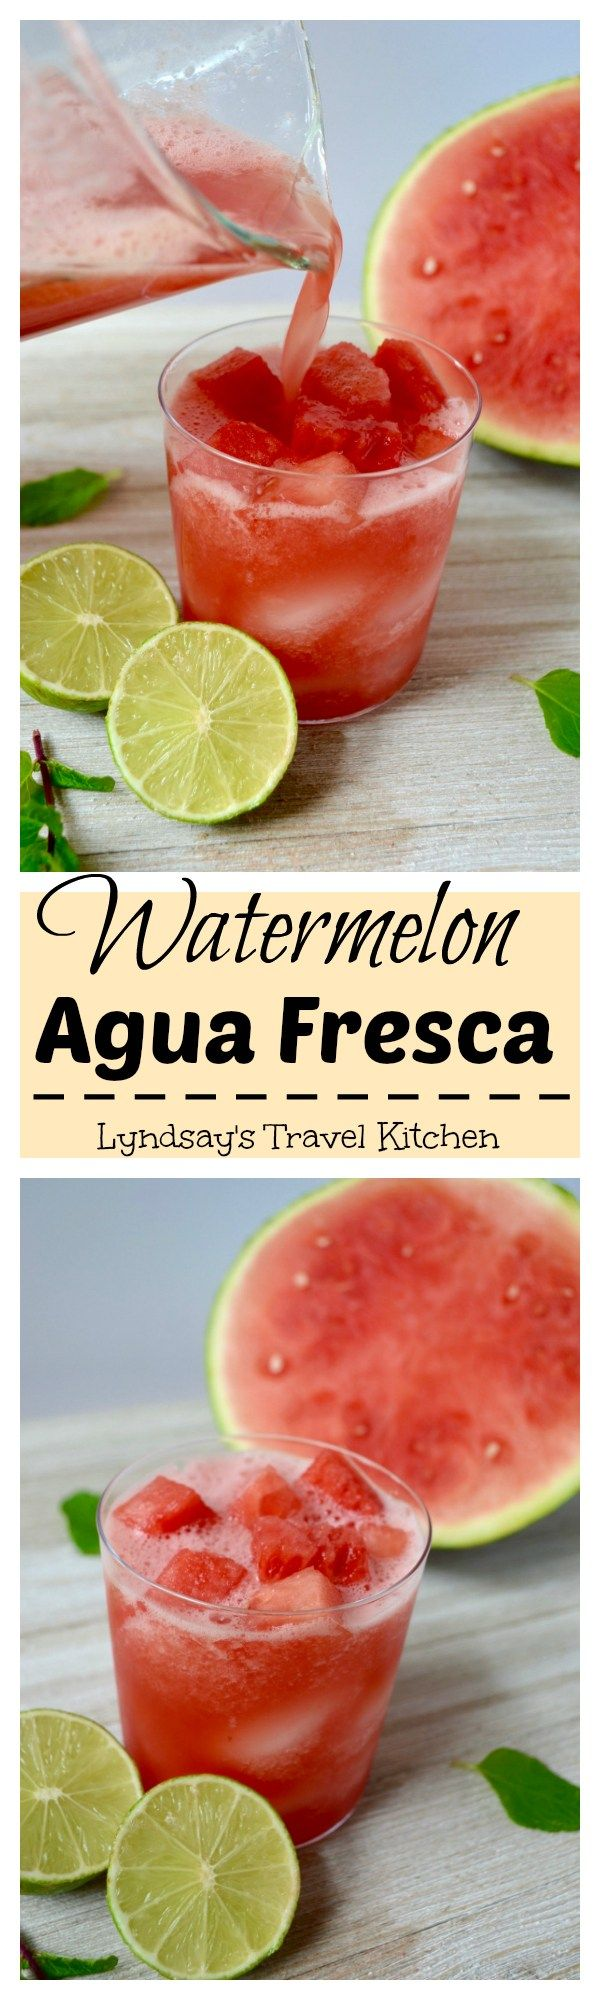 Travel to Mexico and learn how to make their famous drink: Agua Fresca